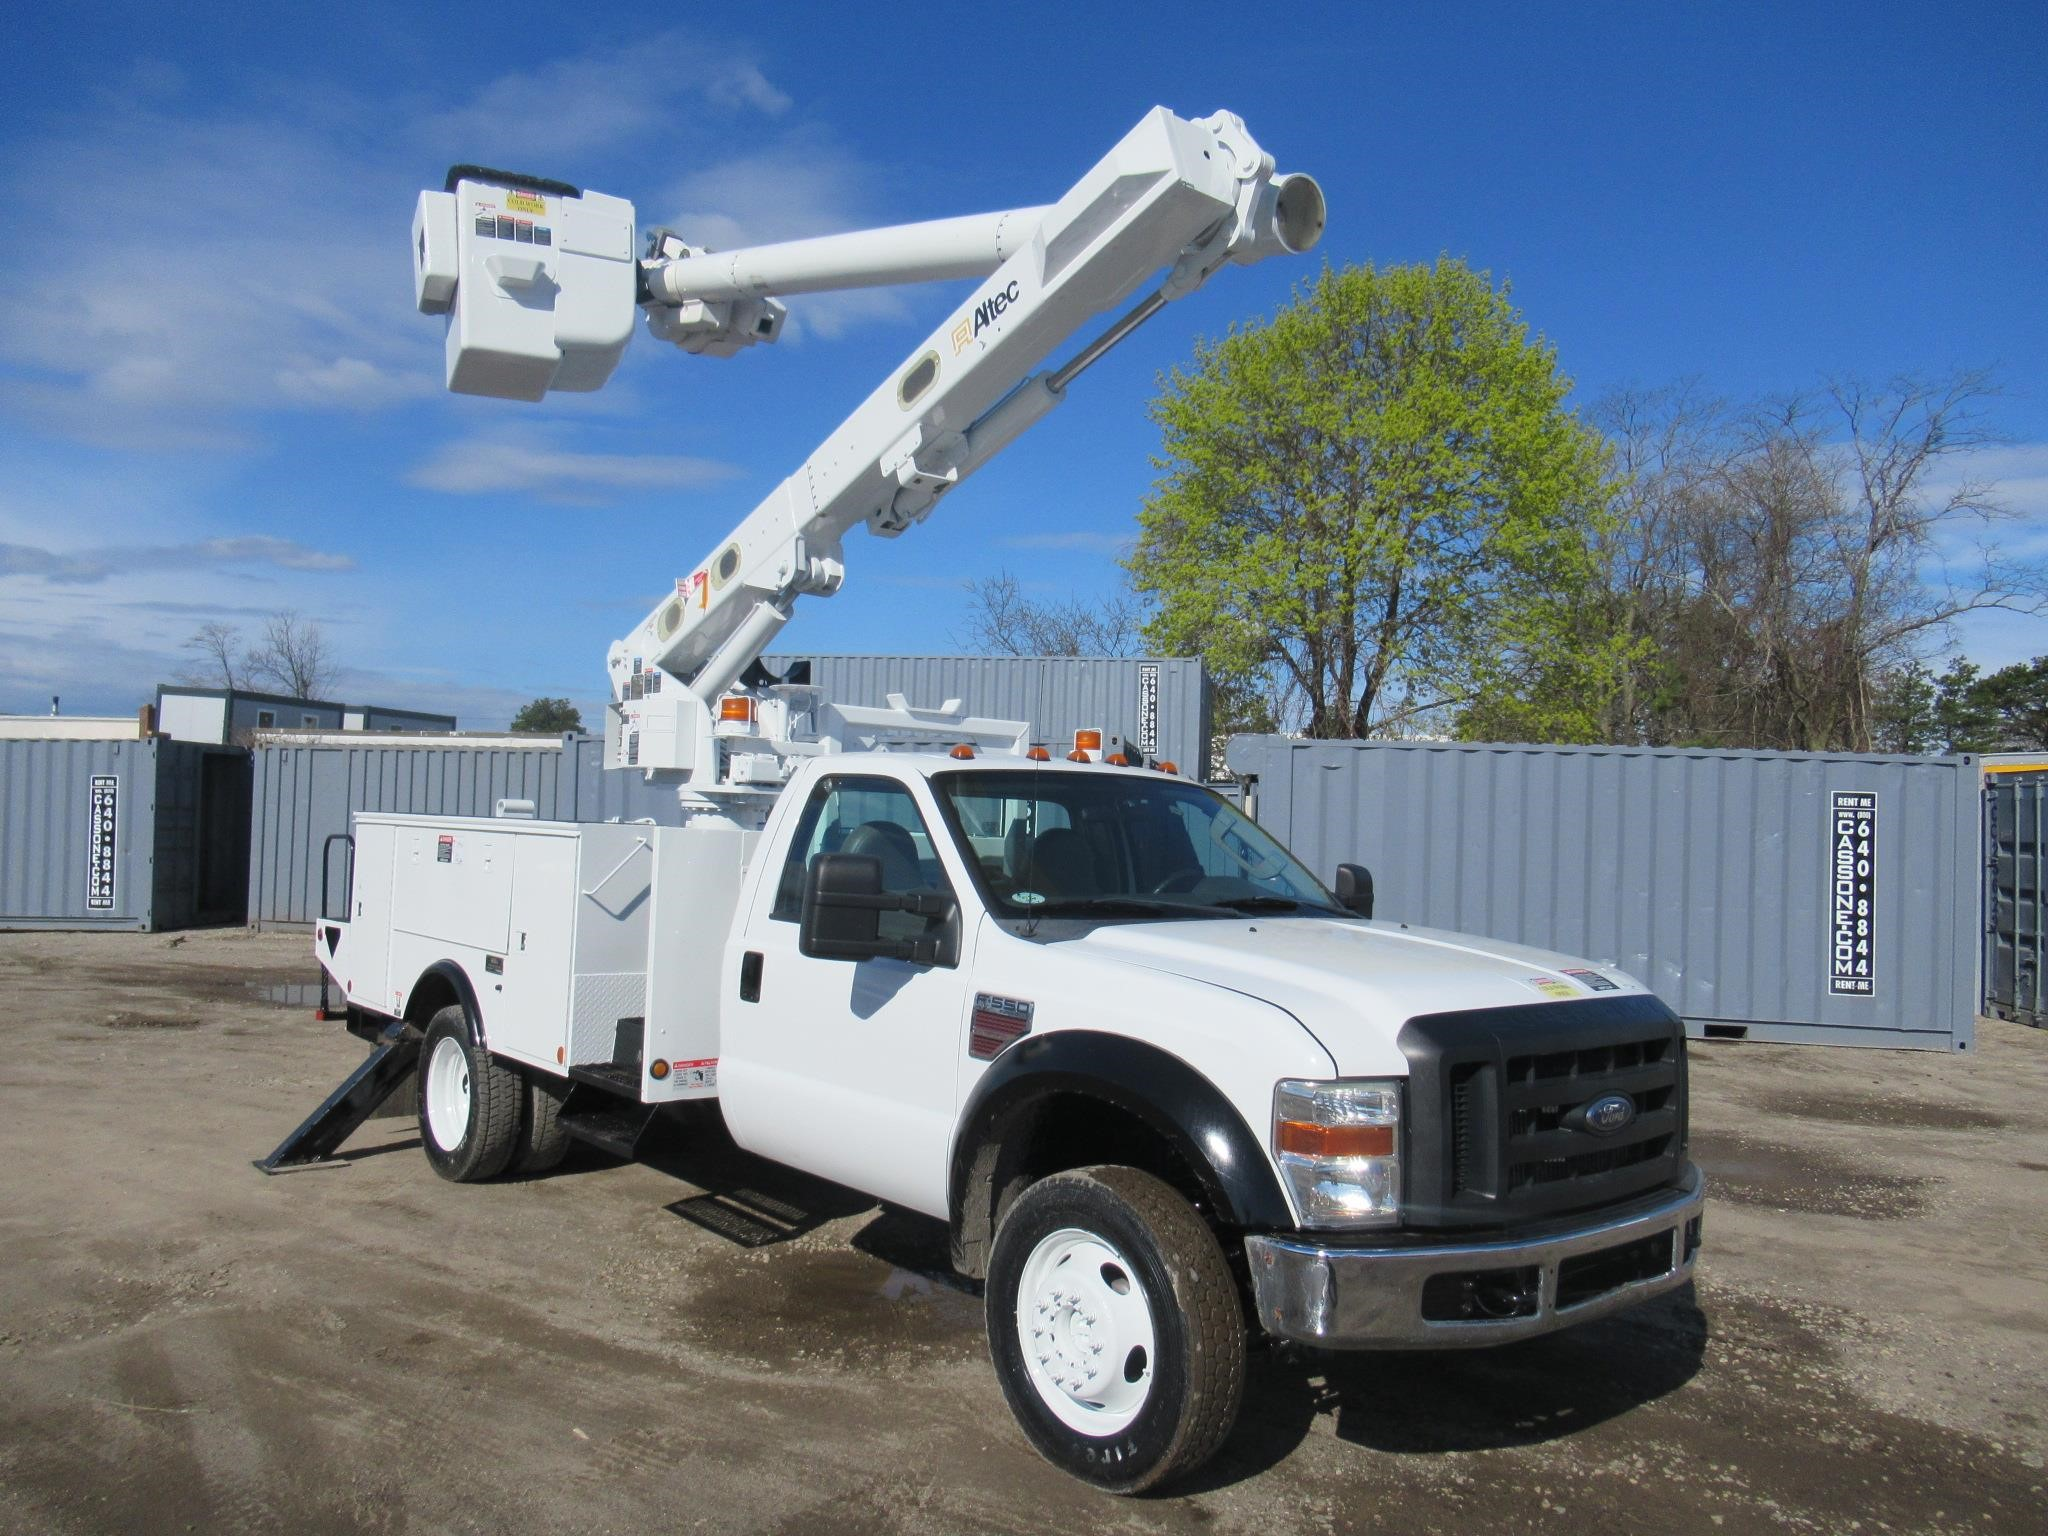 F550 For Sale >> 2008 Altec L37m Mounted On 2008 Ford F550 For Sale In Ronkonkoma New York